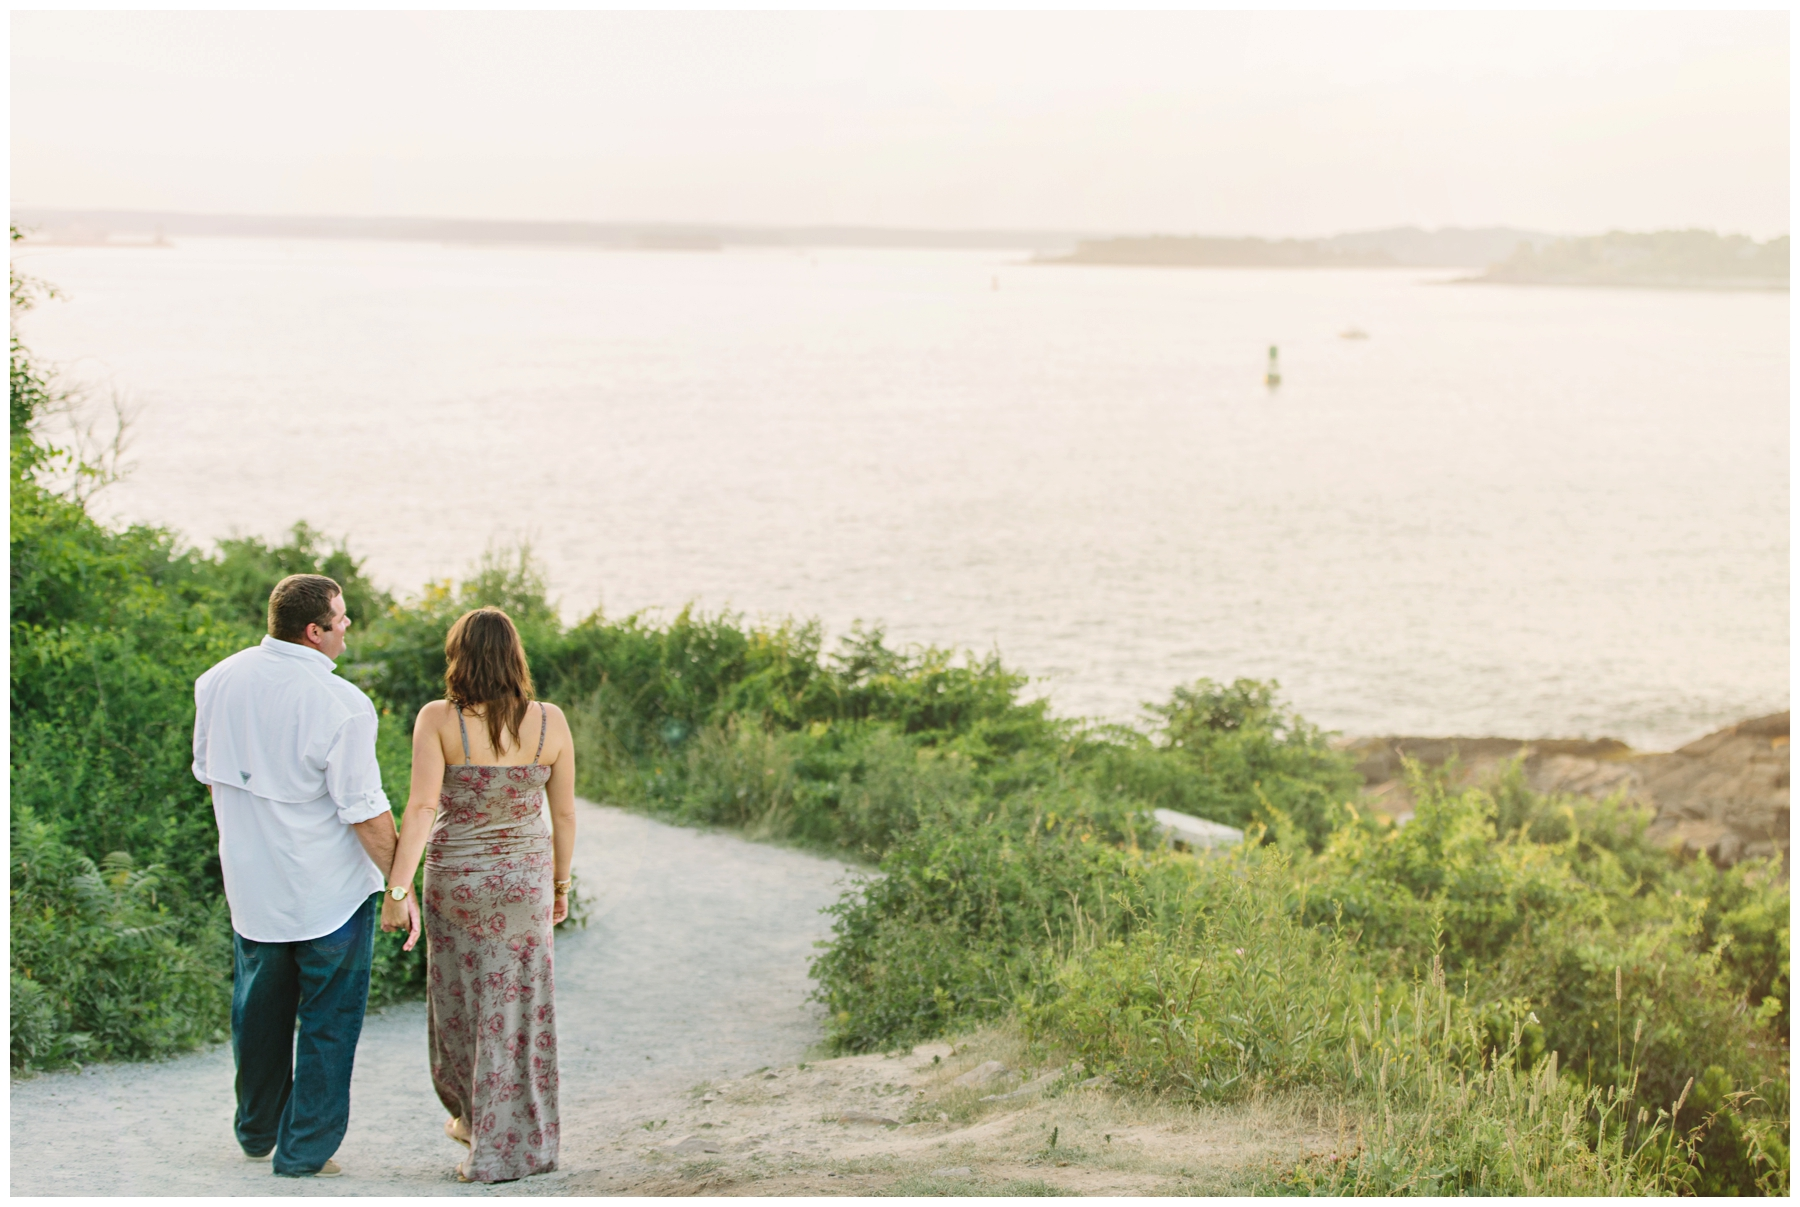 Maine_Photographer_Engagements_FortWilliams_PortlandHeadLight_lighthouse_coastal_seaside-013